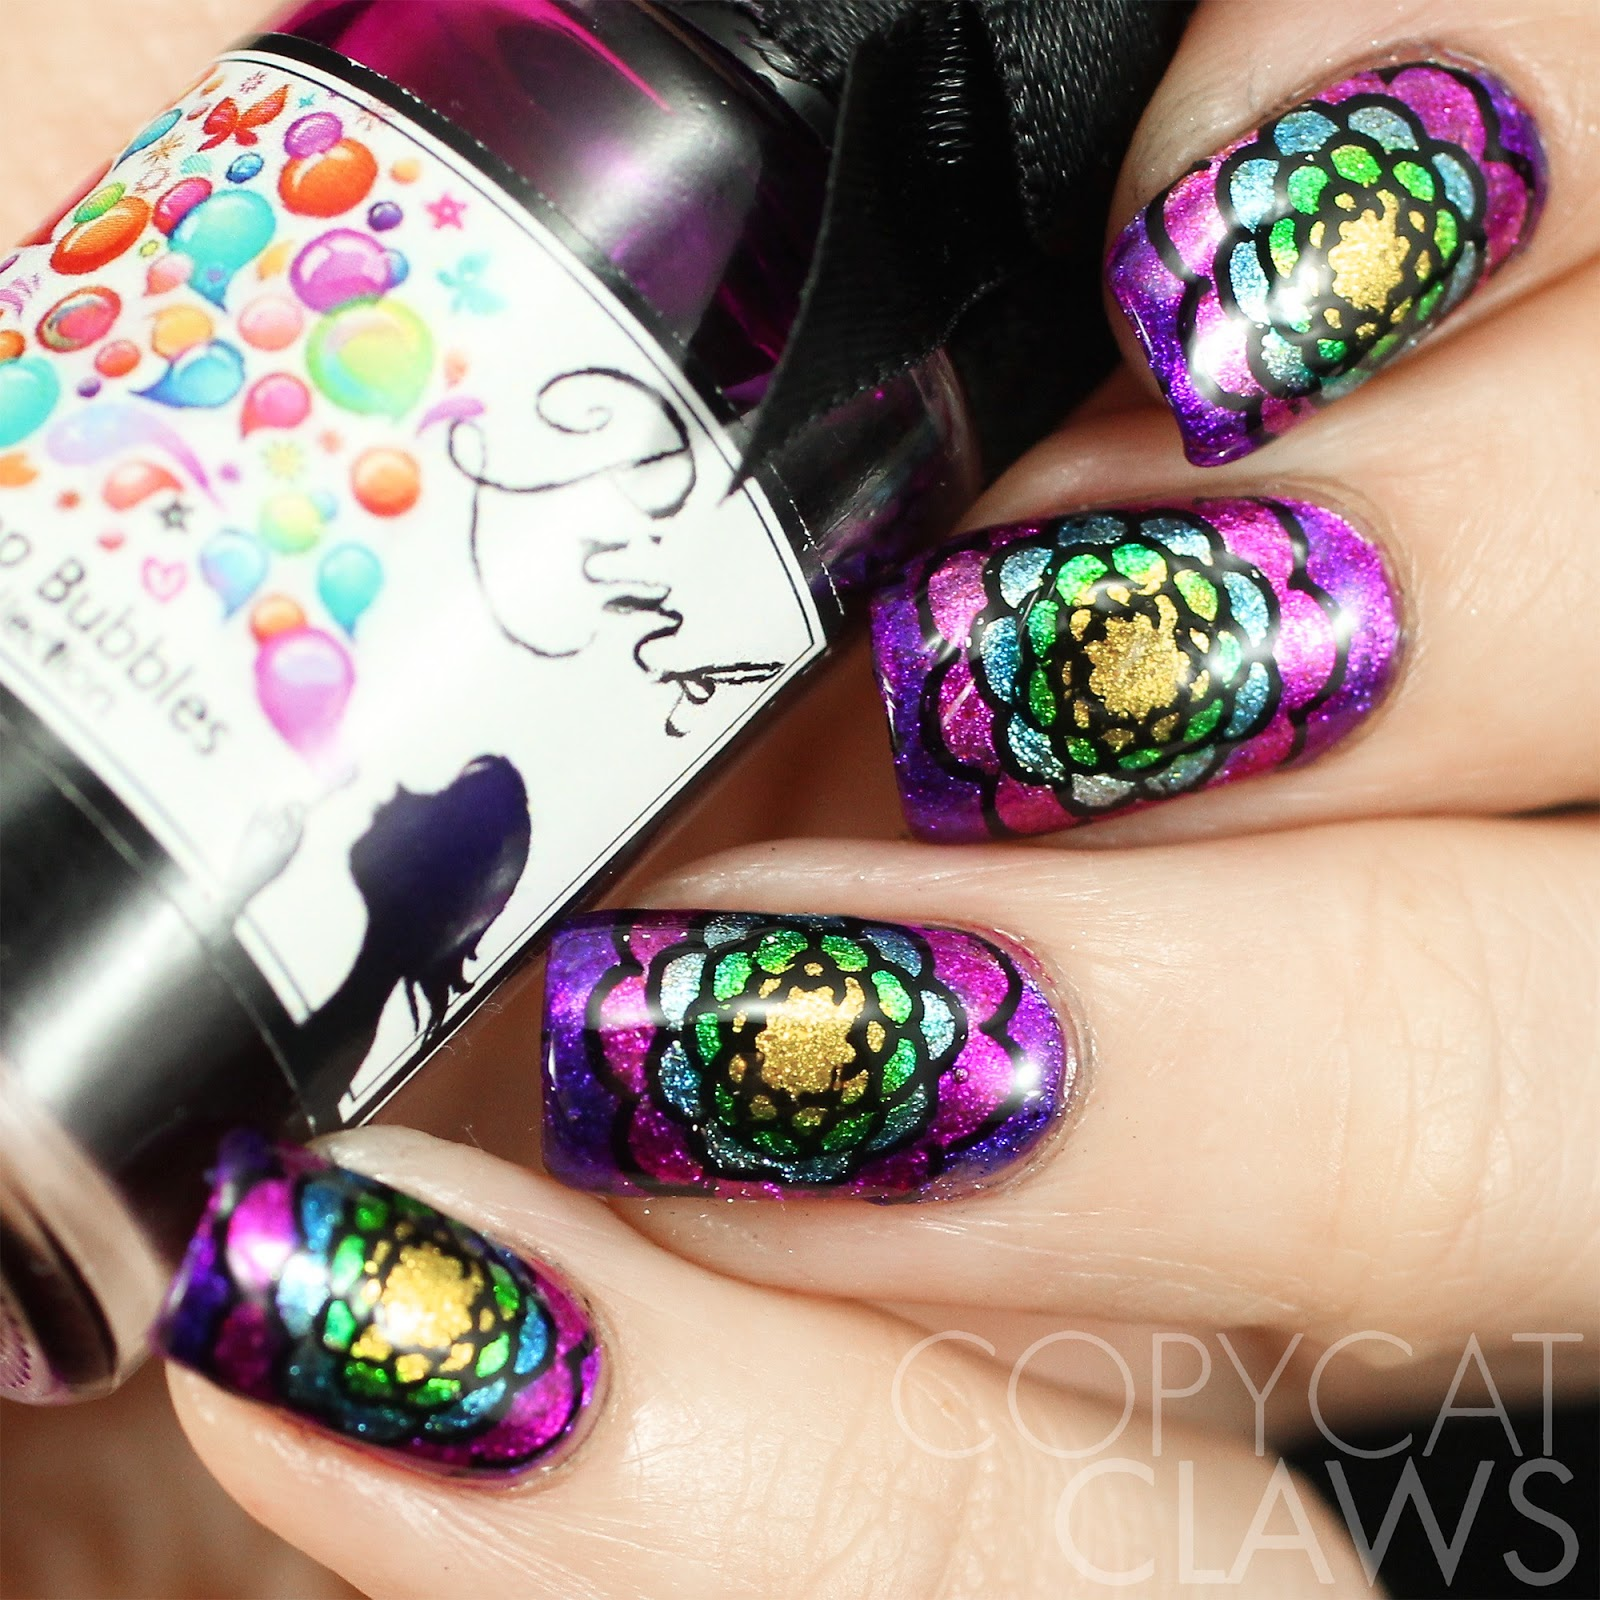 Copycat Claws: Esmaltes da Kelly Stamping Plate Review